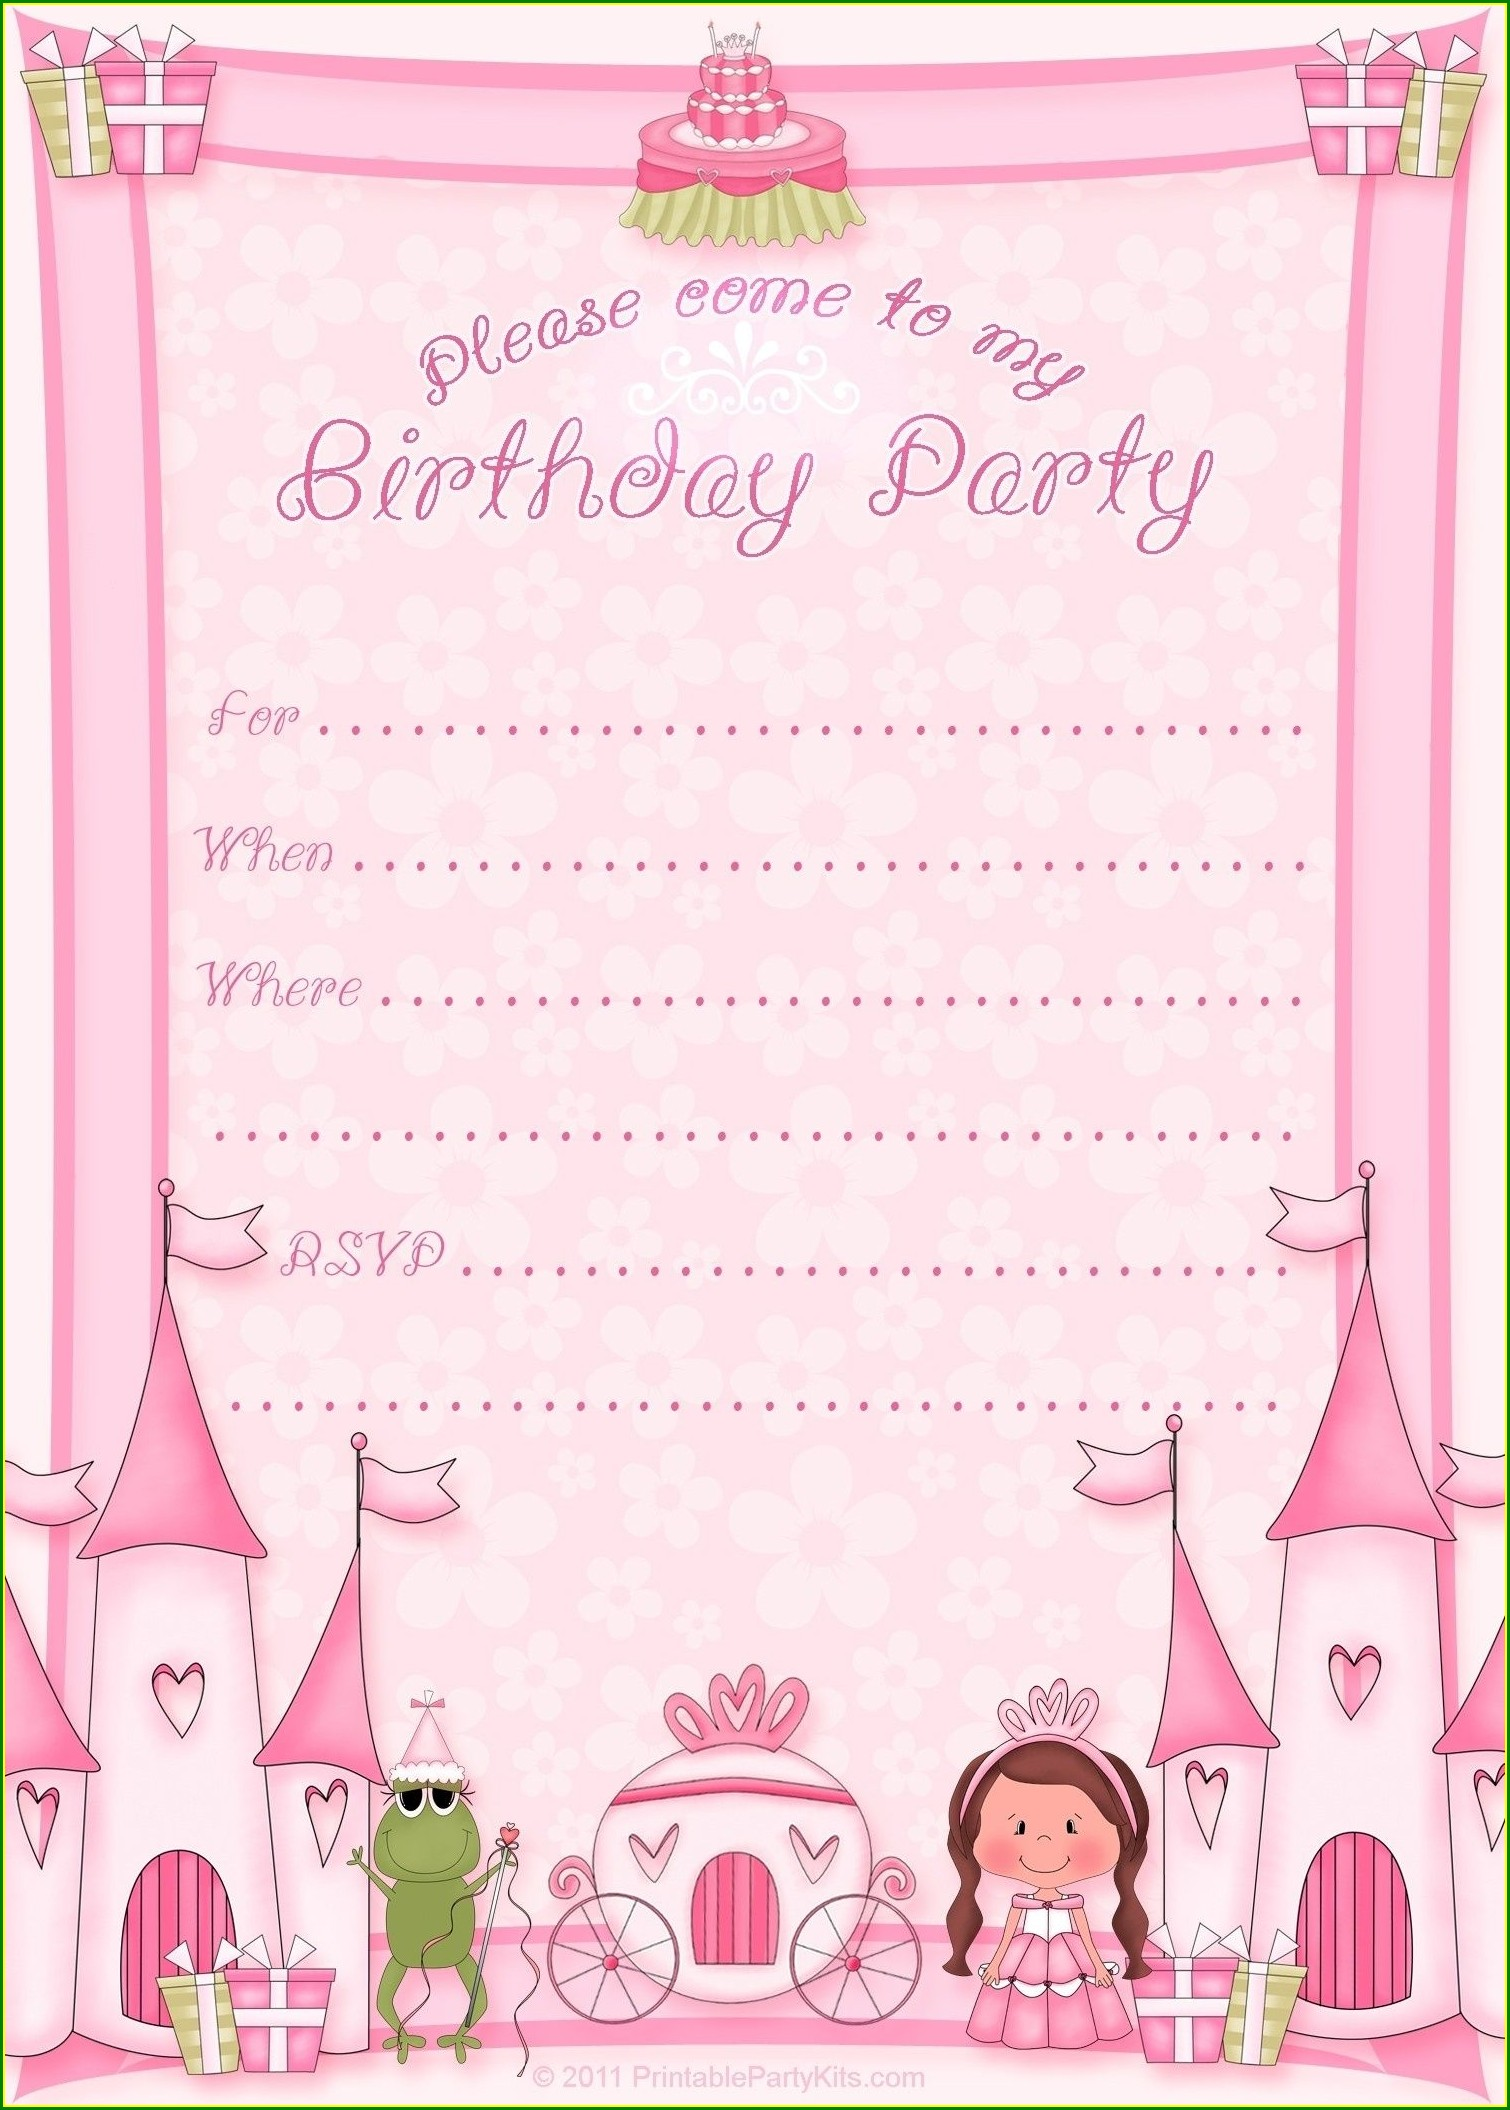 Birthday Invitation Card Free Download